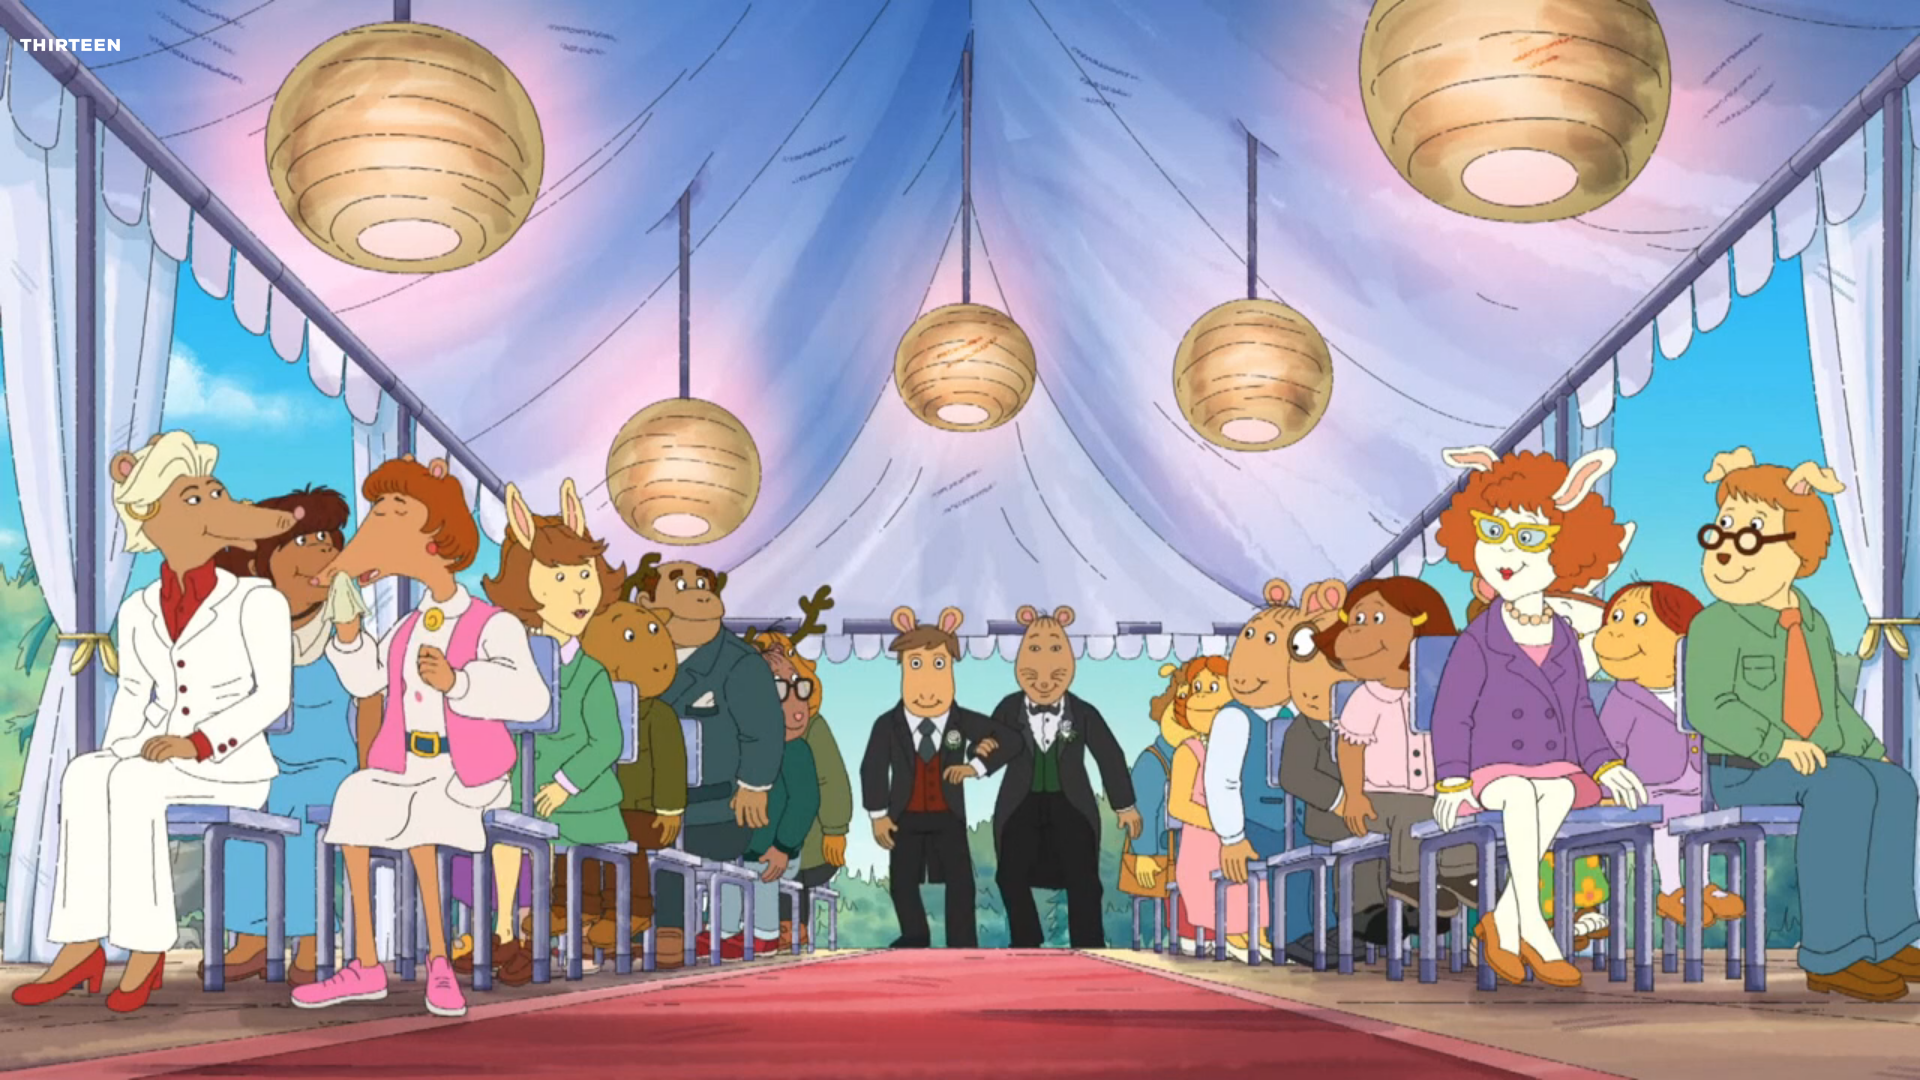 'Arthur' Character Mr. Ratburn Has Gay Wedding on PBS Kids Cartoon